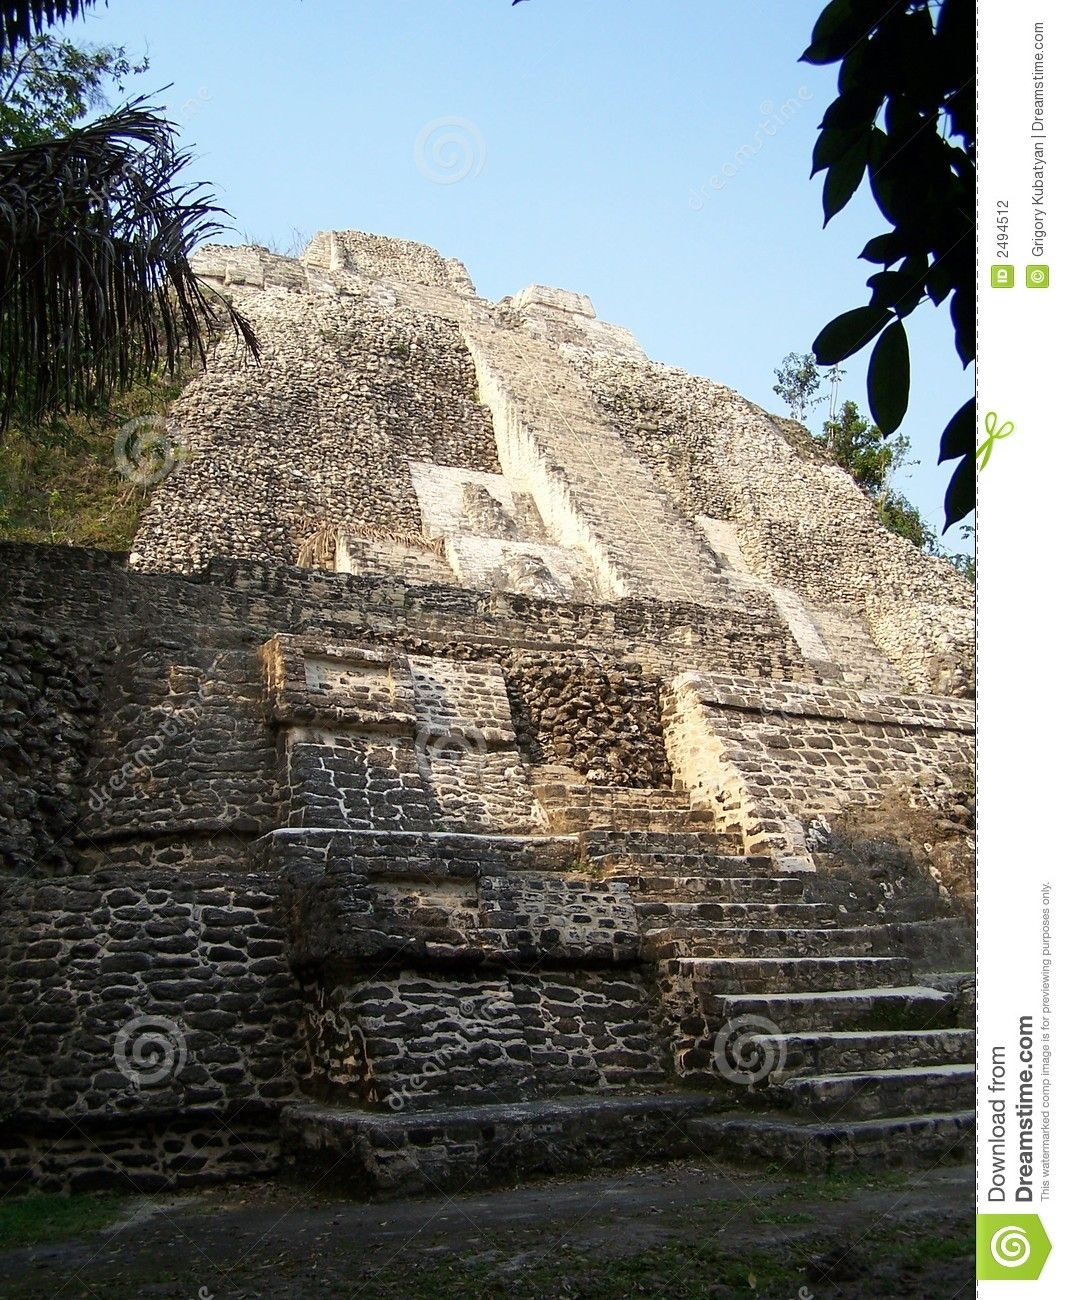 Lamanai site is one of the oldest continuously occupied Maya sites in Belize, from about 1500 BC when maize was being grown at the site, to 1680 AD. ,